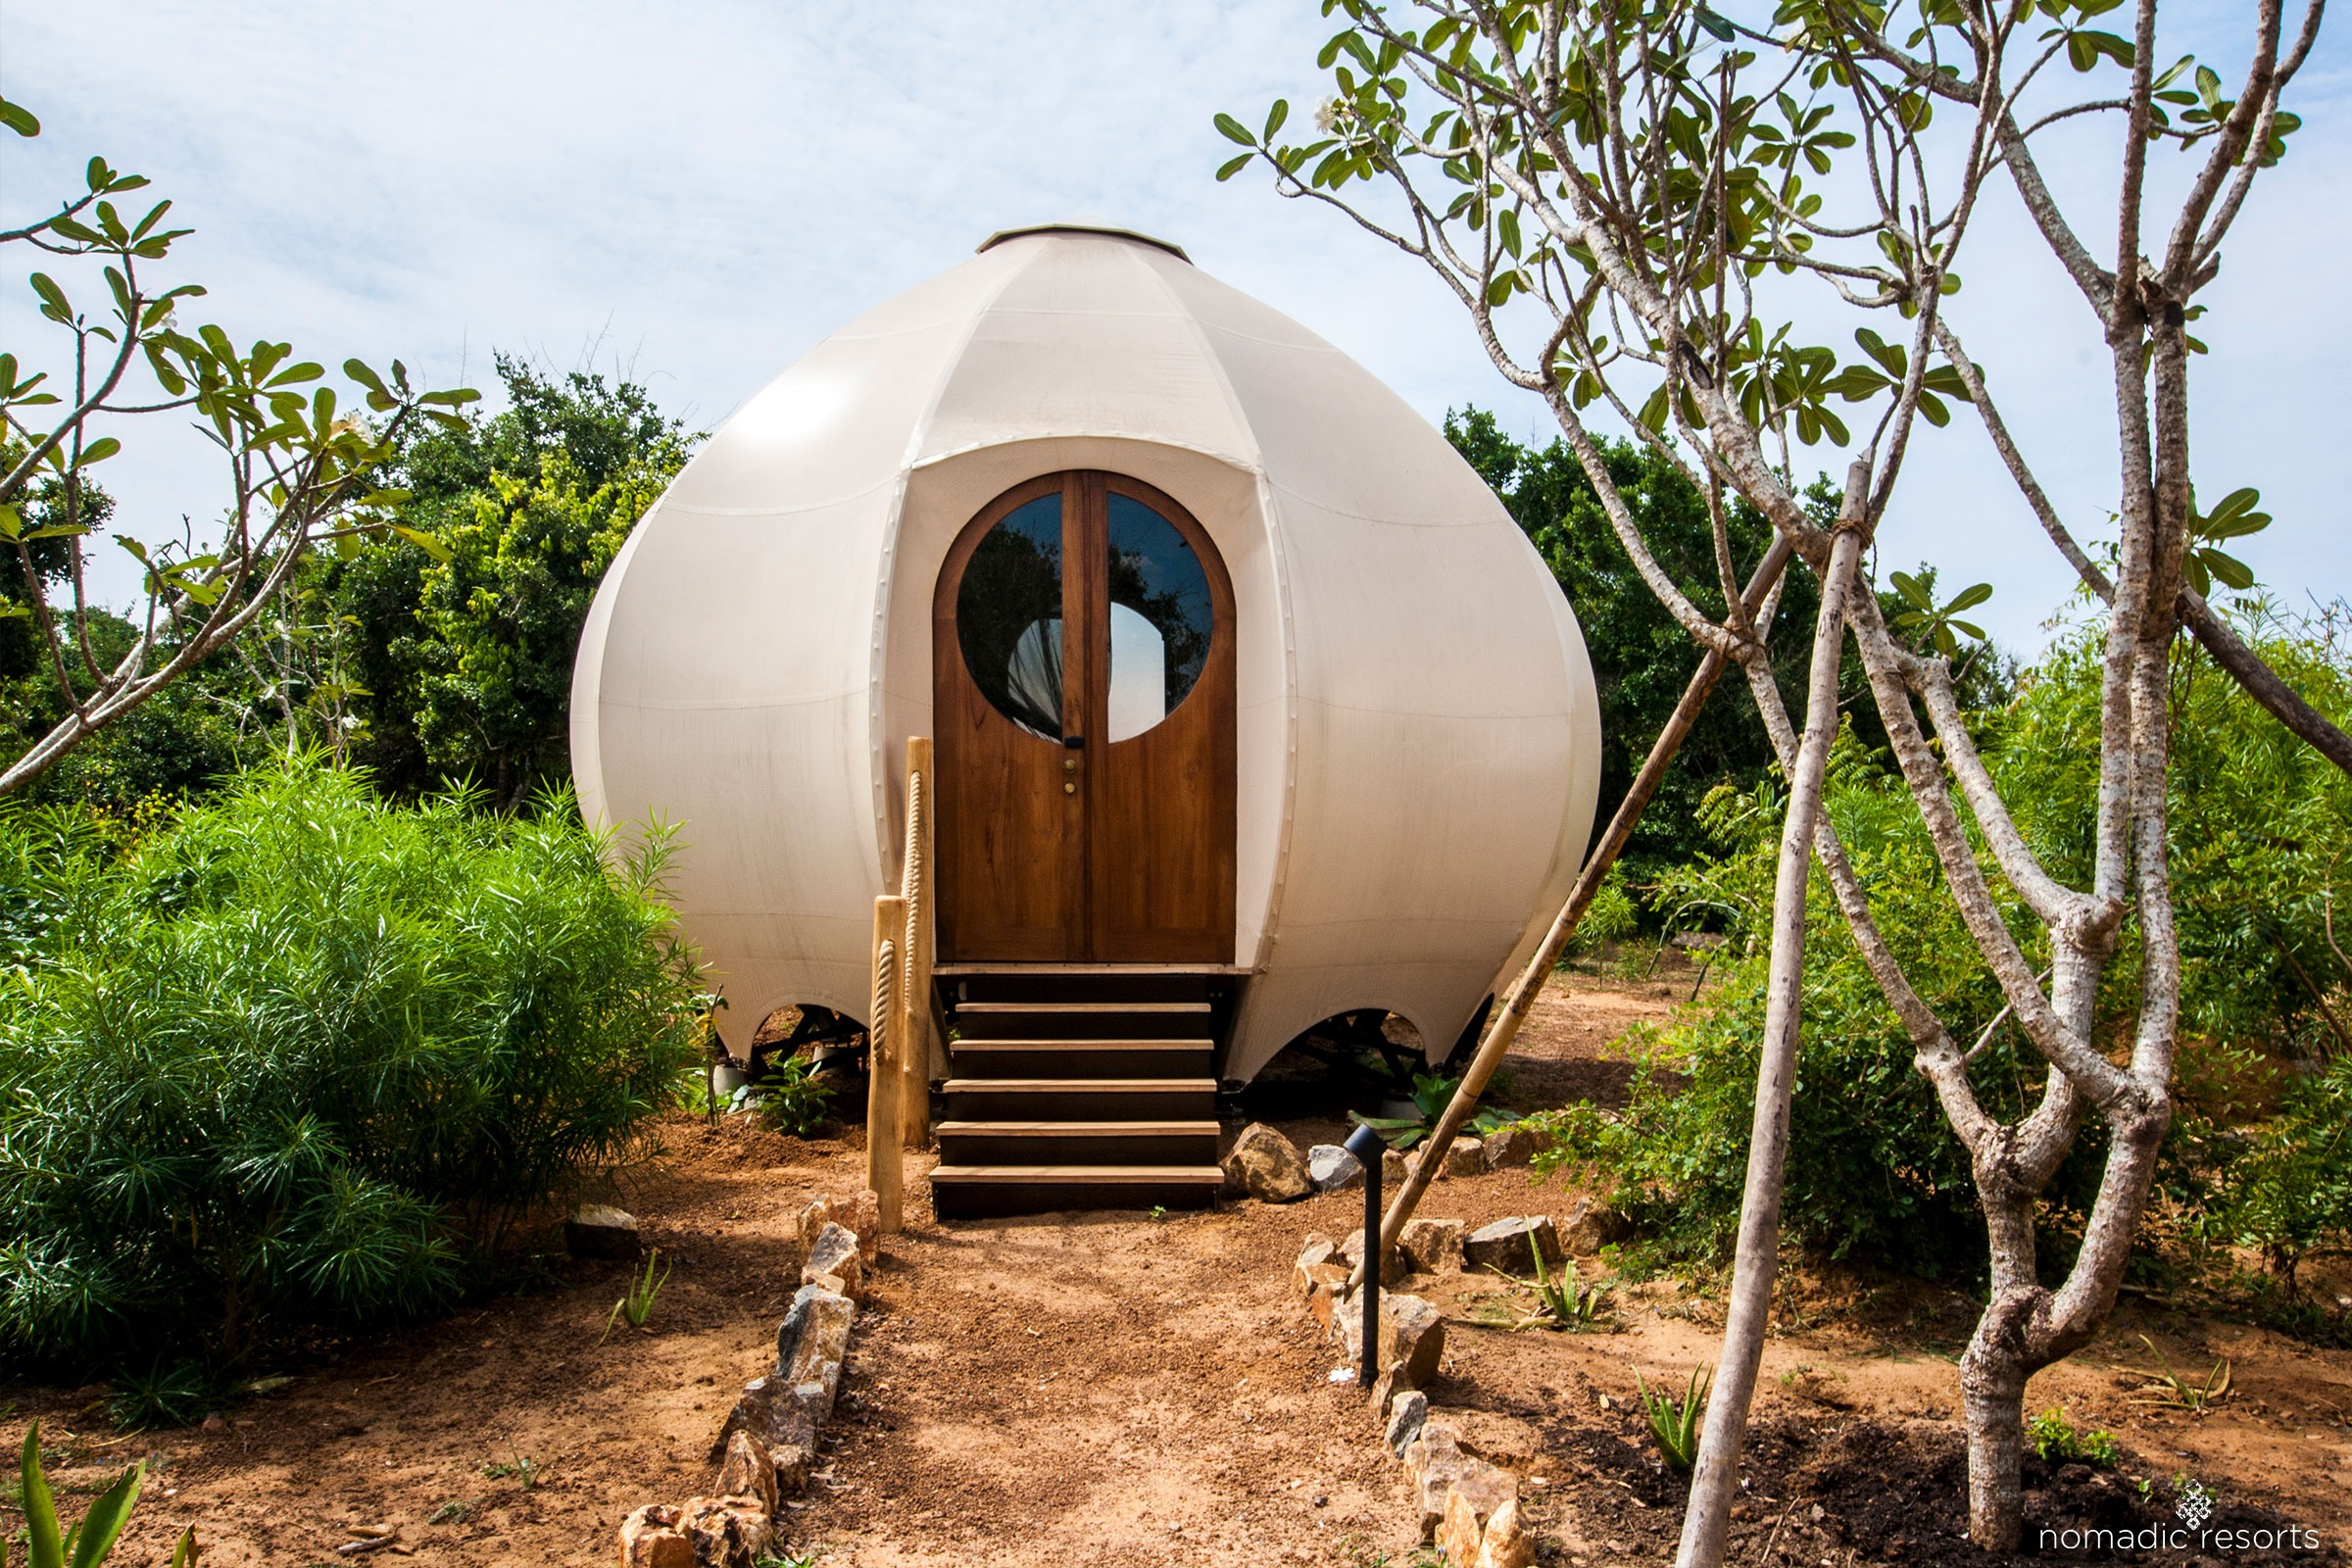 urchin pod at wild coast tented lodge in yala sri lanka